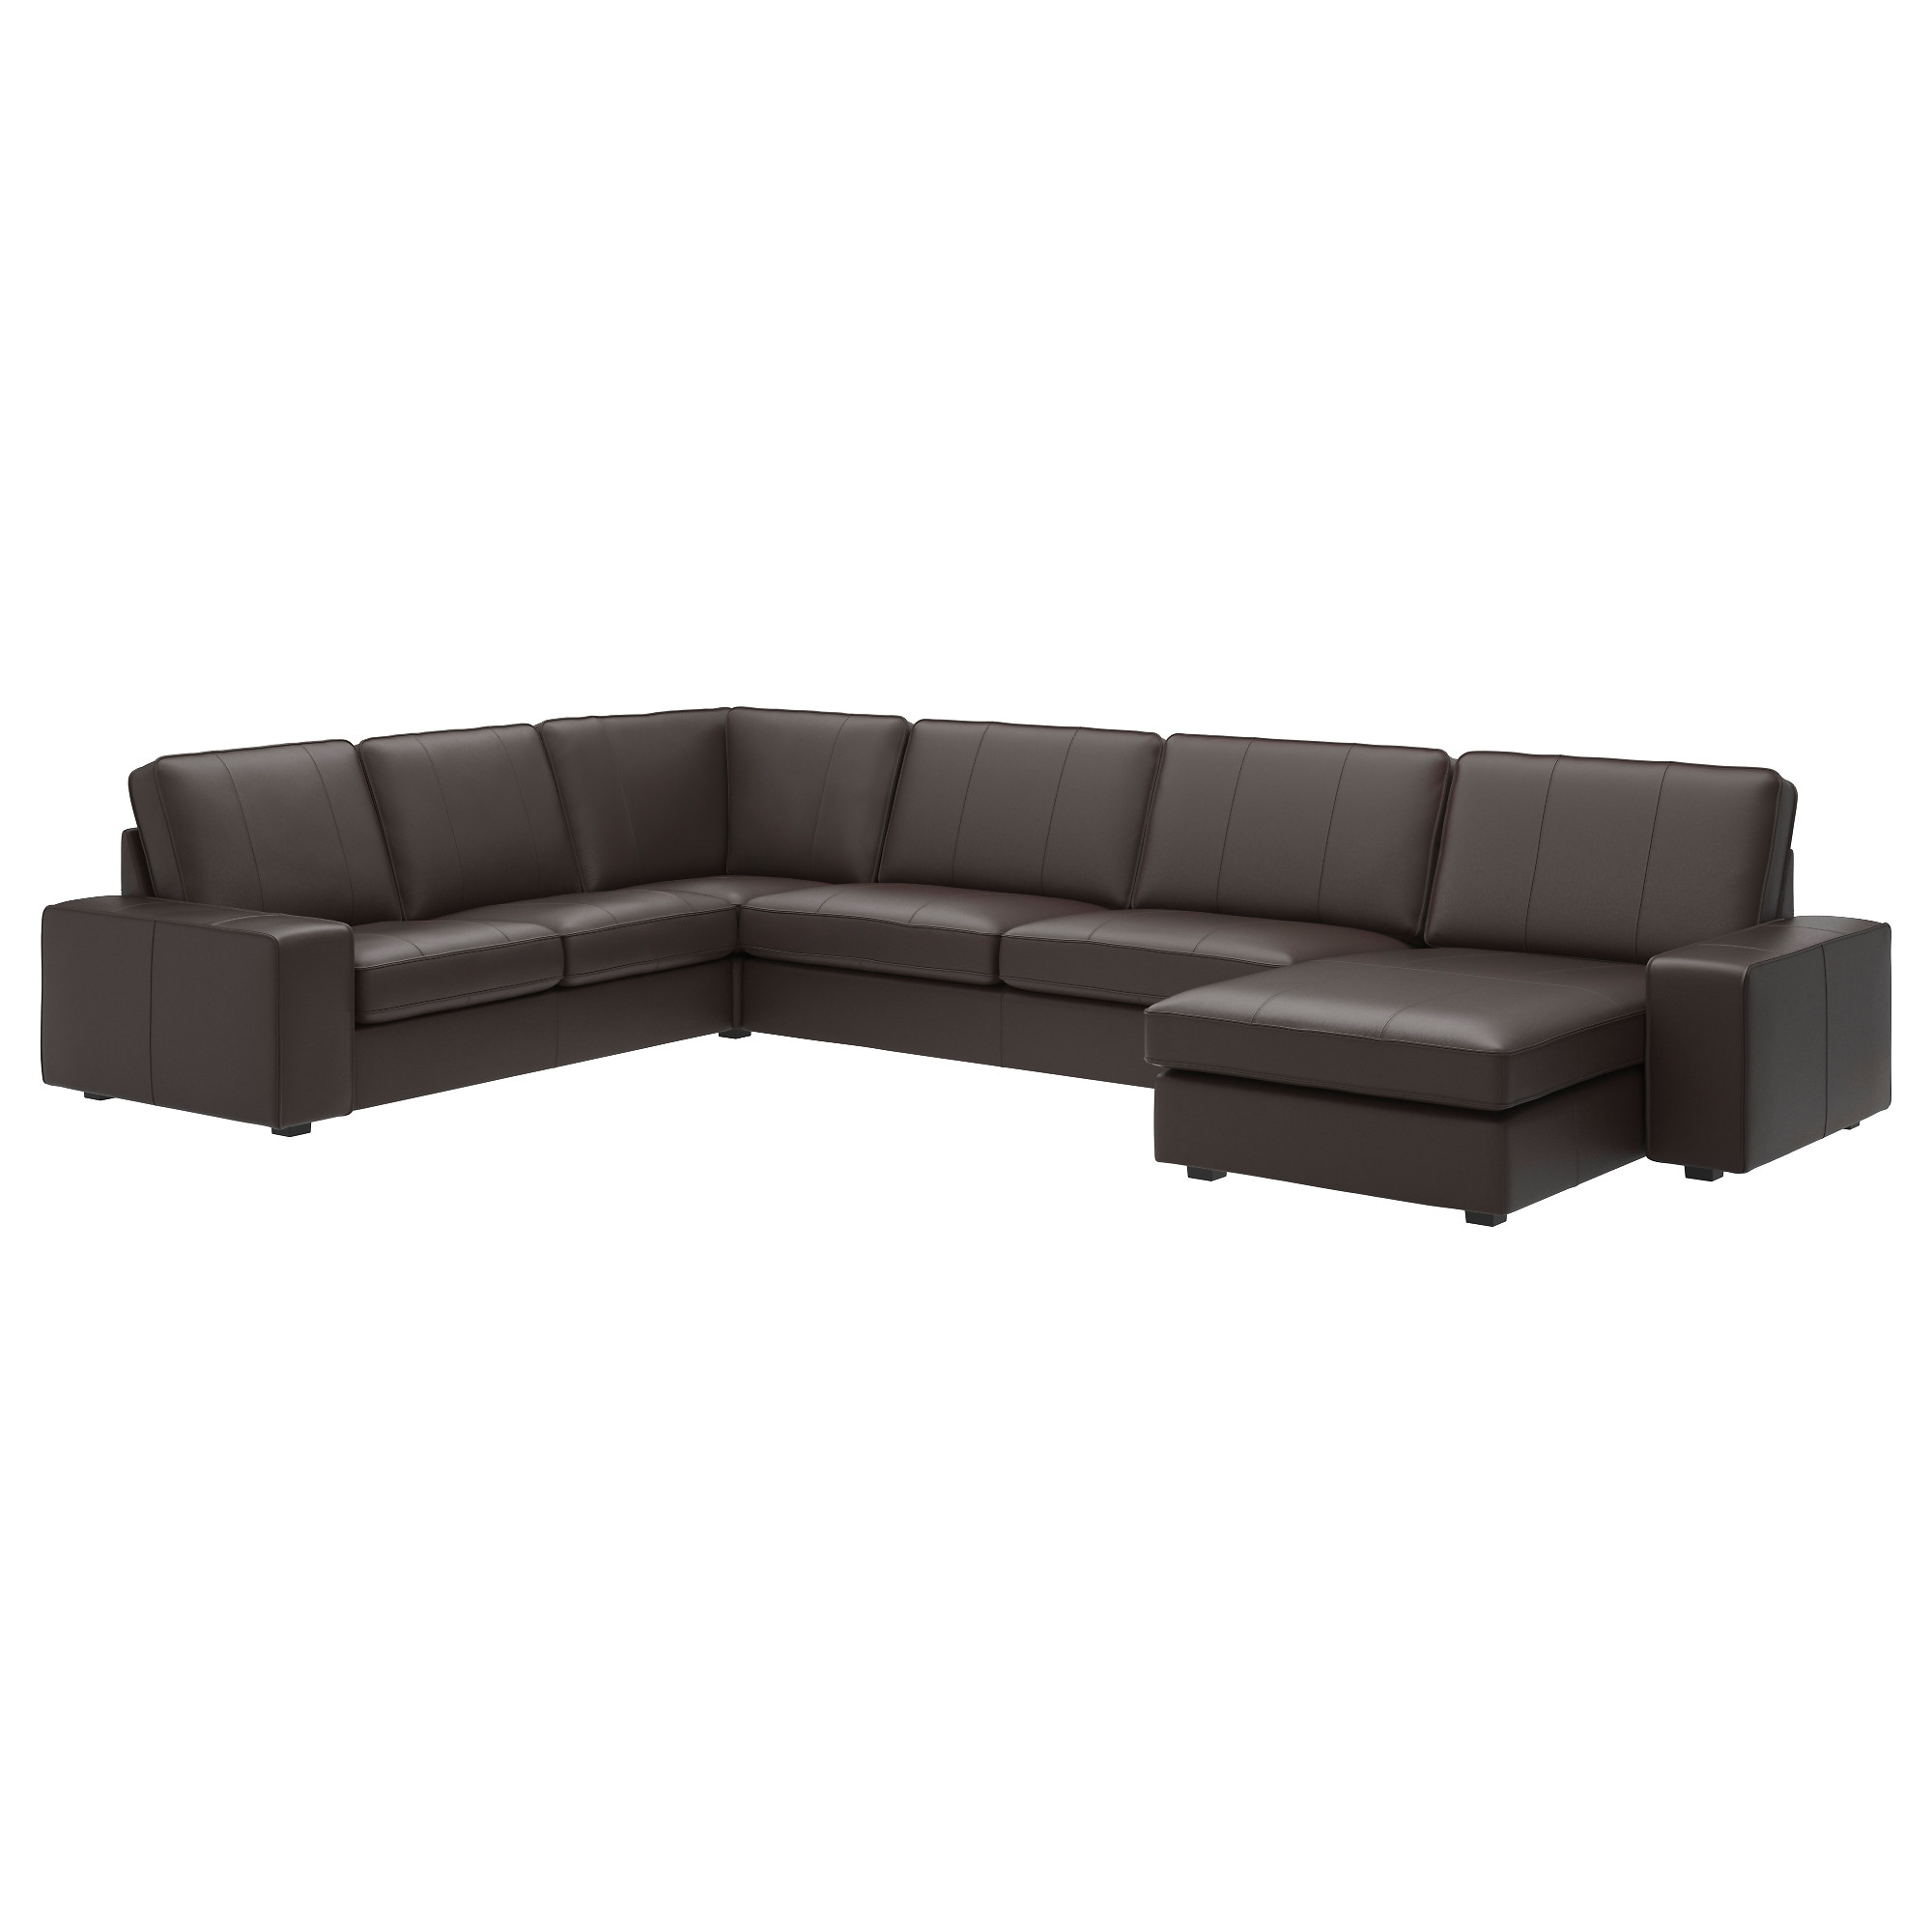 Sectional Leather Faux Leather Sofas IKEA